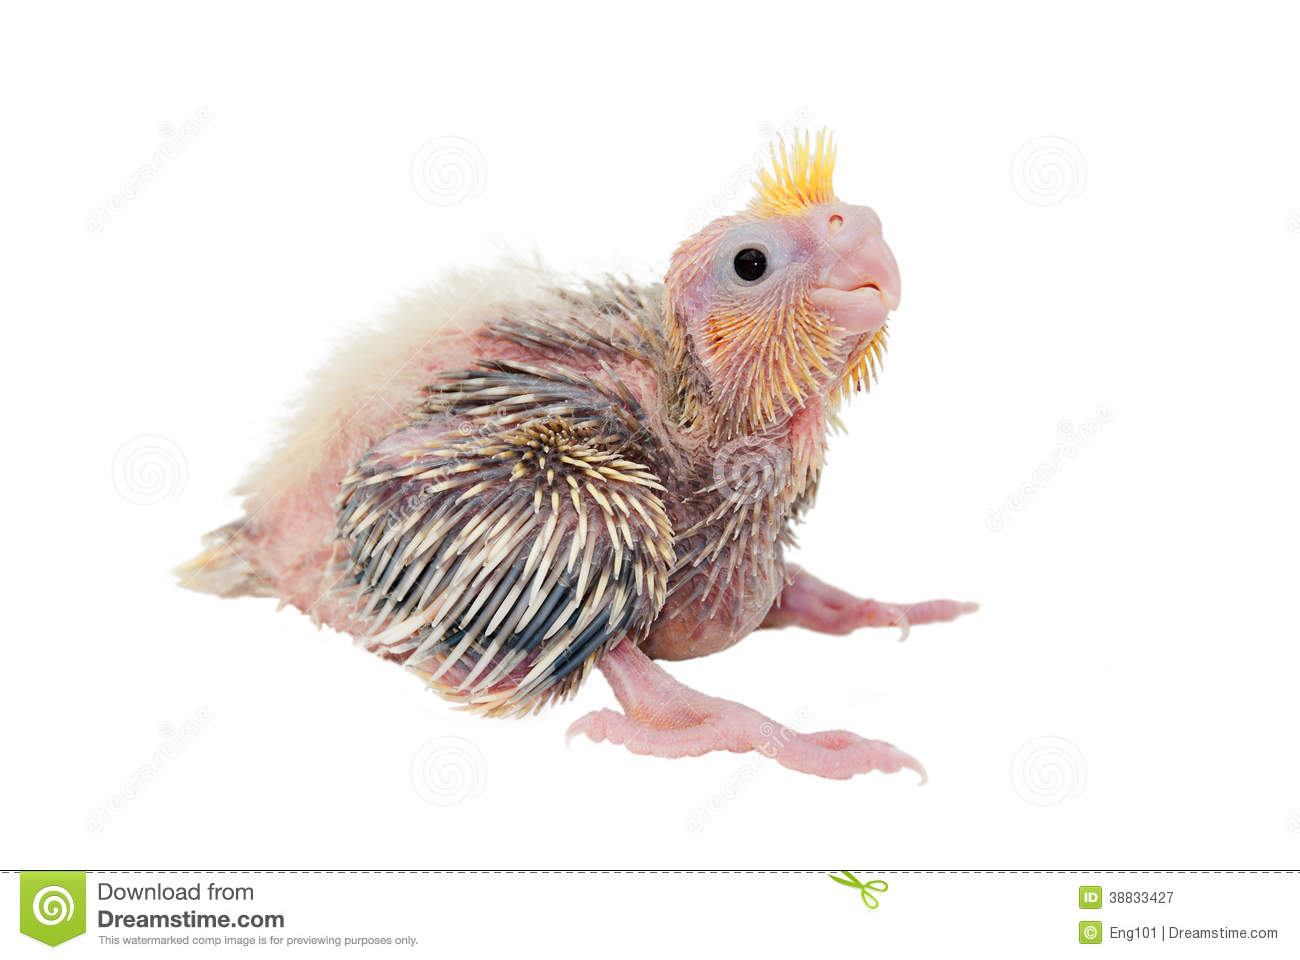 Cockatiel Baby Stock Image. Image Of Feathers, Nestling